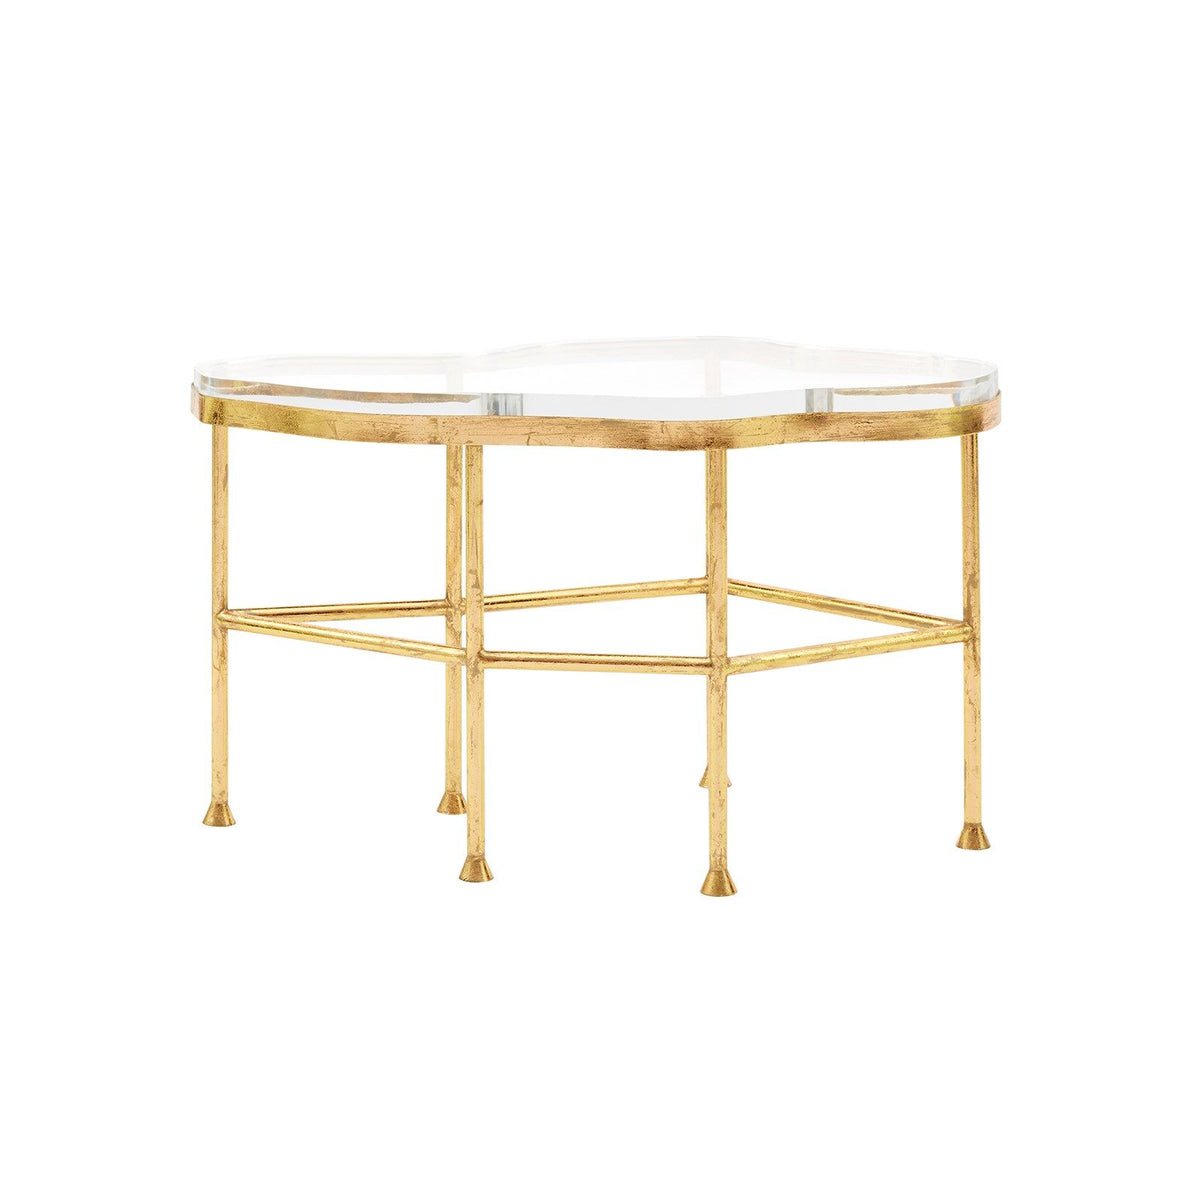 Bungalow 5 - CRISTAL COFFEE TABLE, GOLD-Bungalow 5-Blue Hand Home